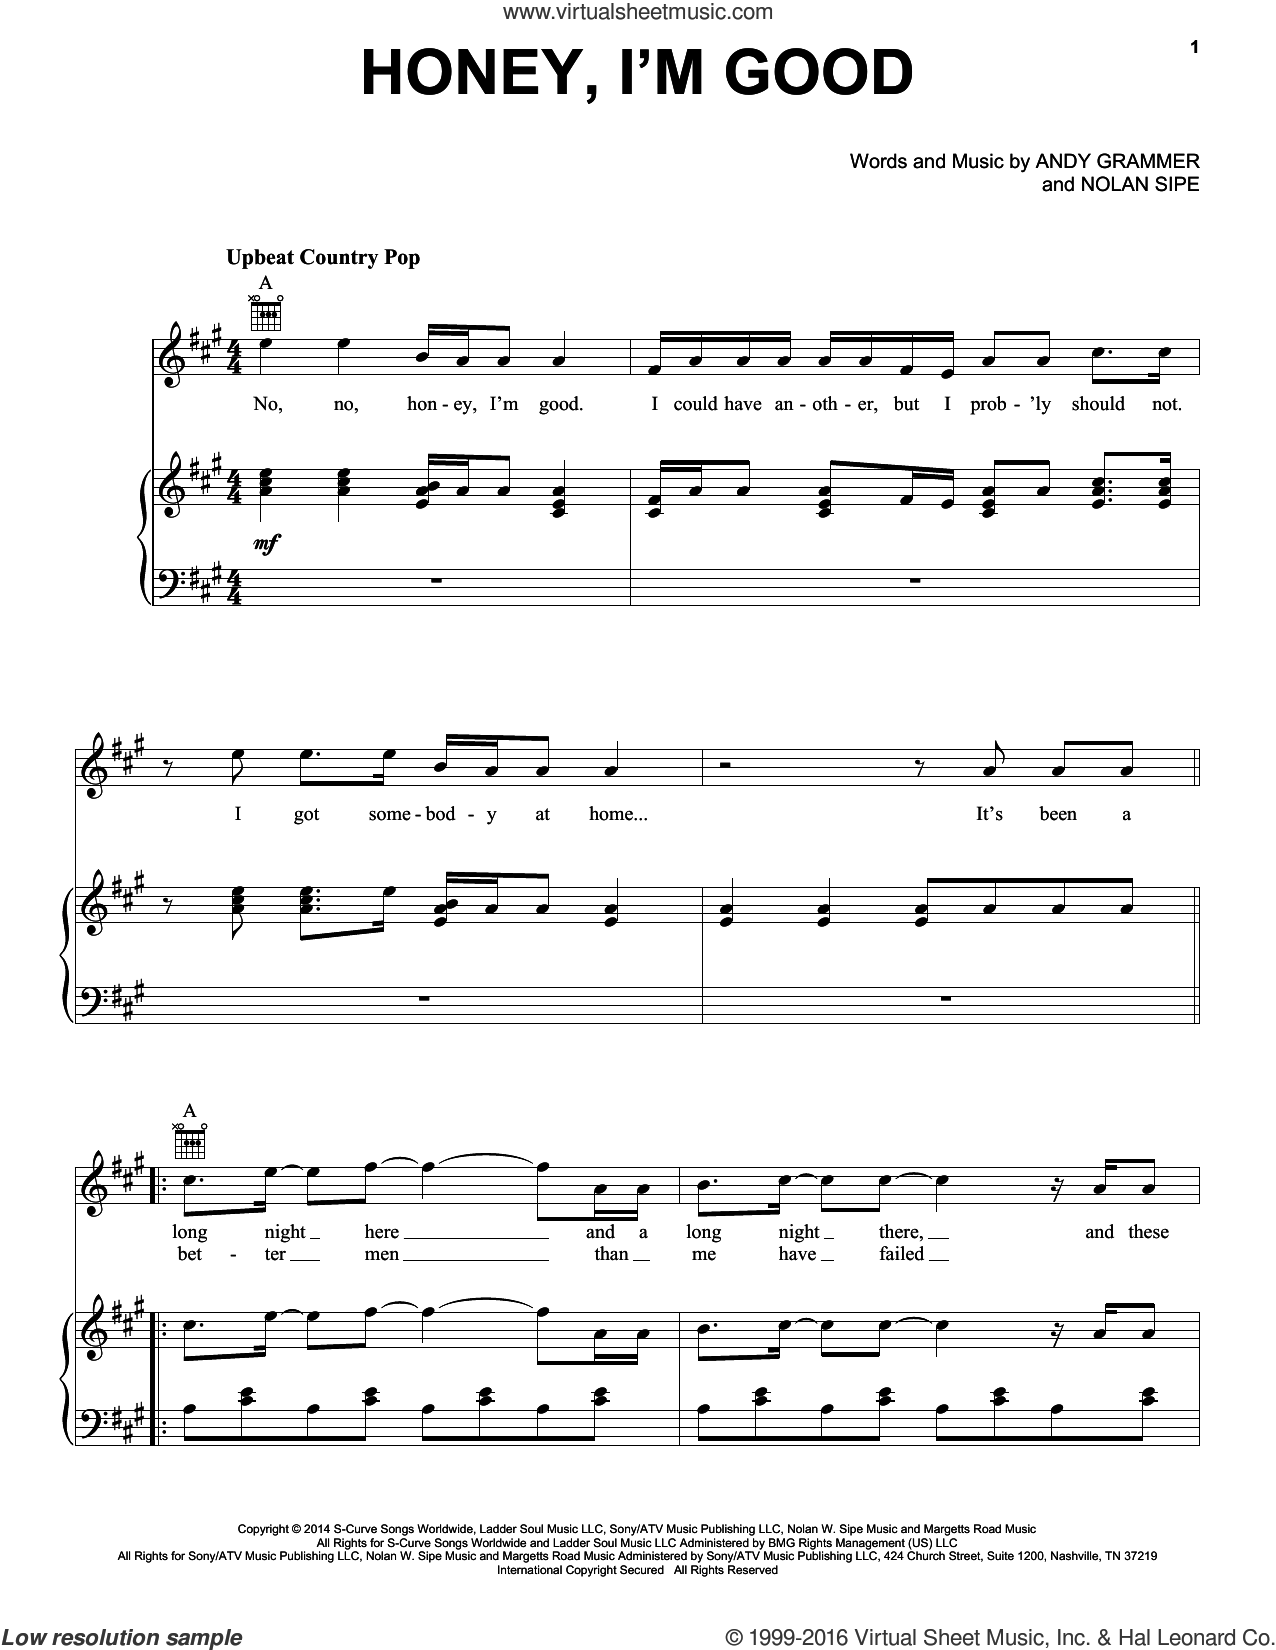 Honey, I'm Good sheet music for voice, piano or guitar by Andy Grammer and Nolan Sipe, intermediate skill level